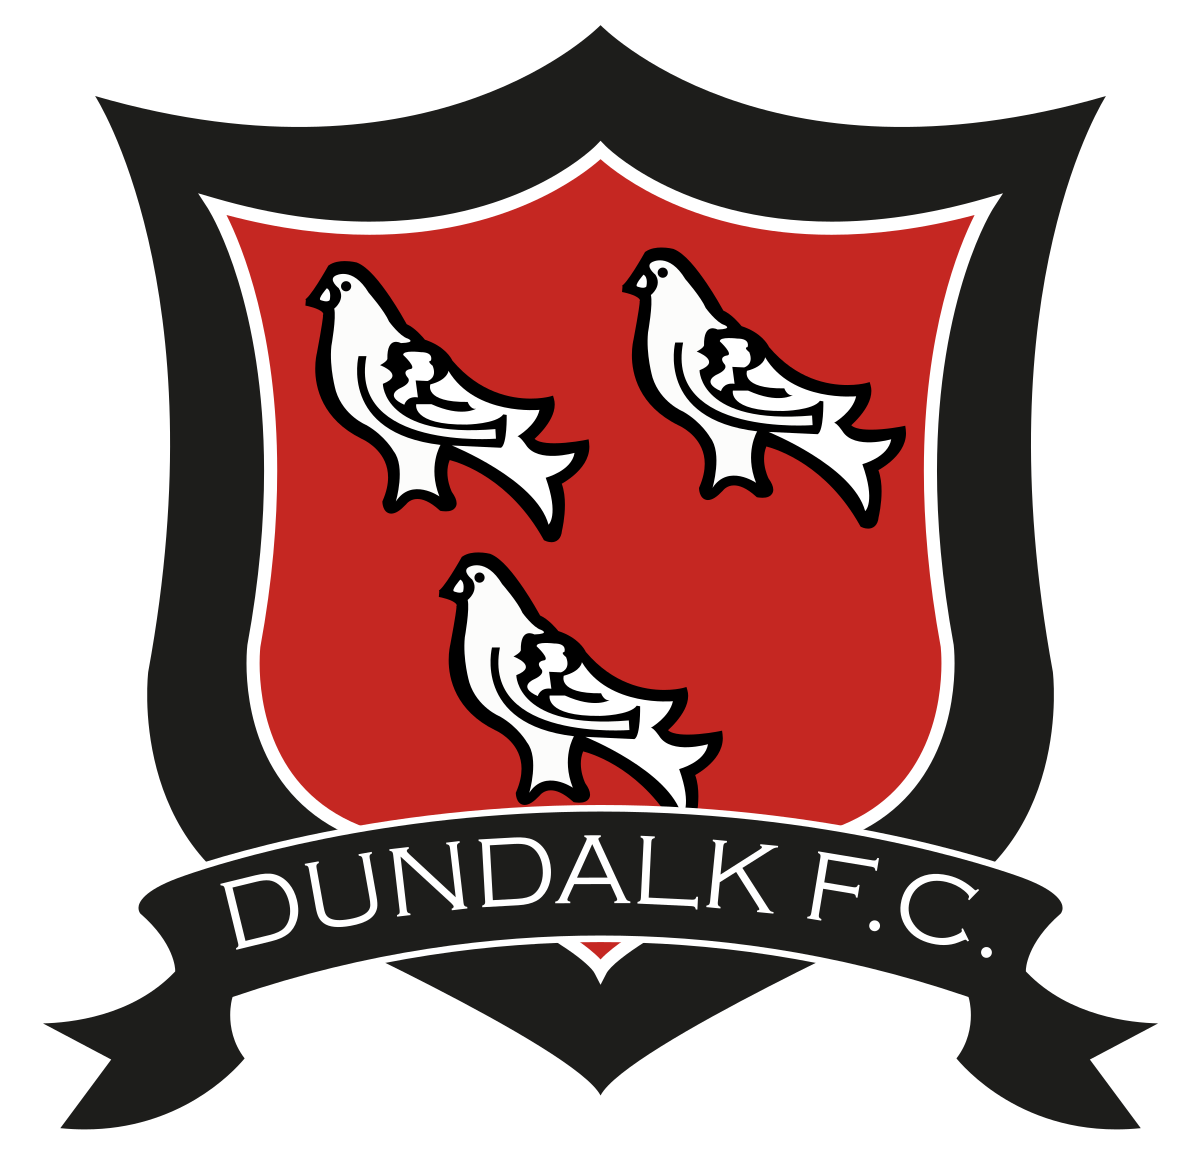 Programme TV Dundalk